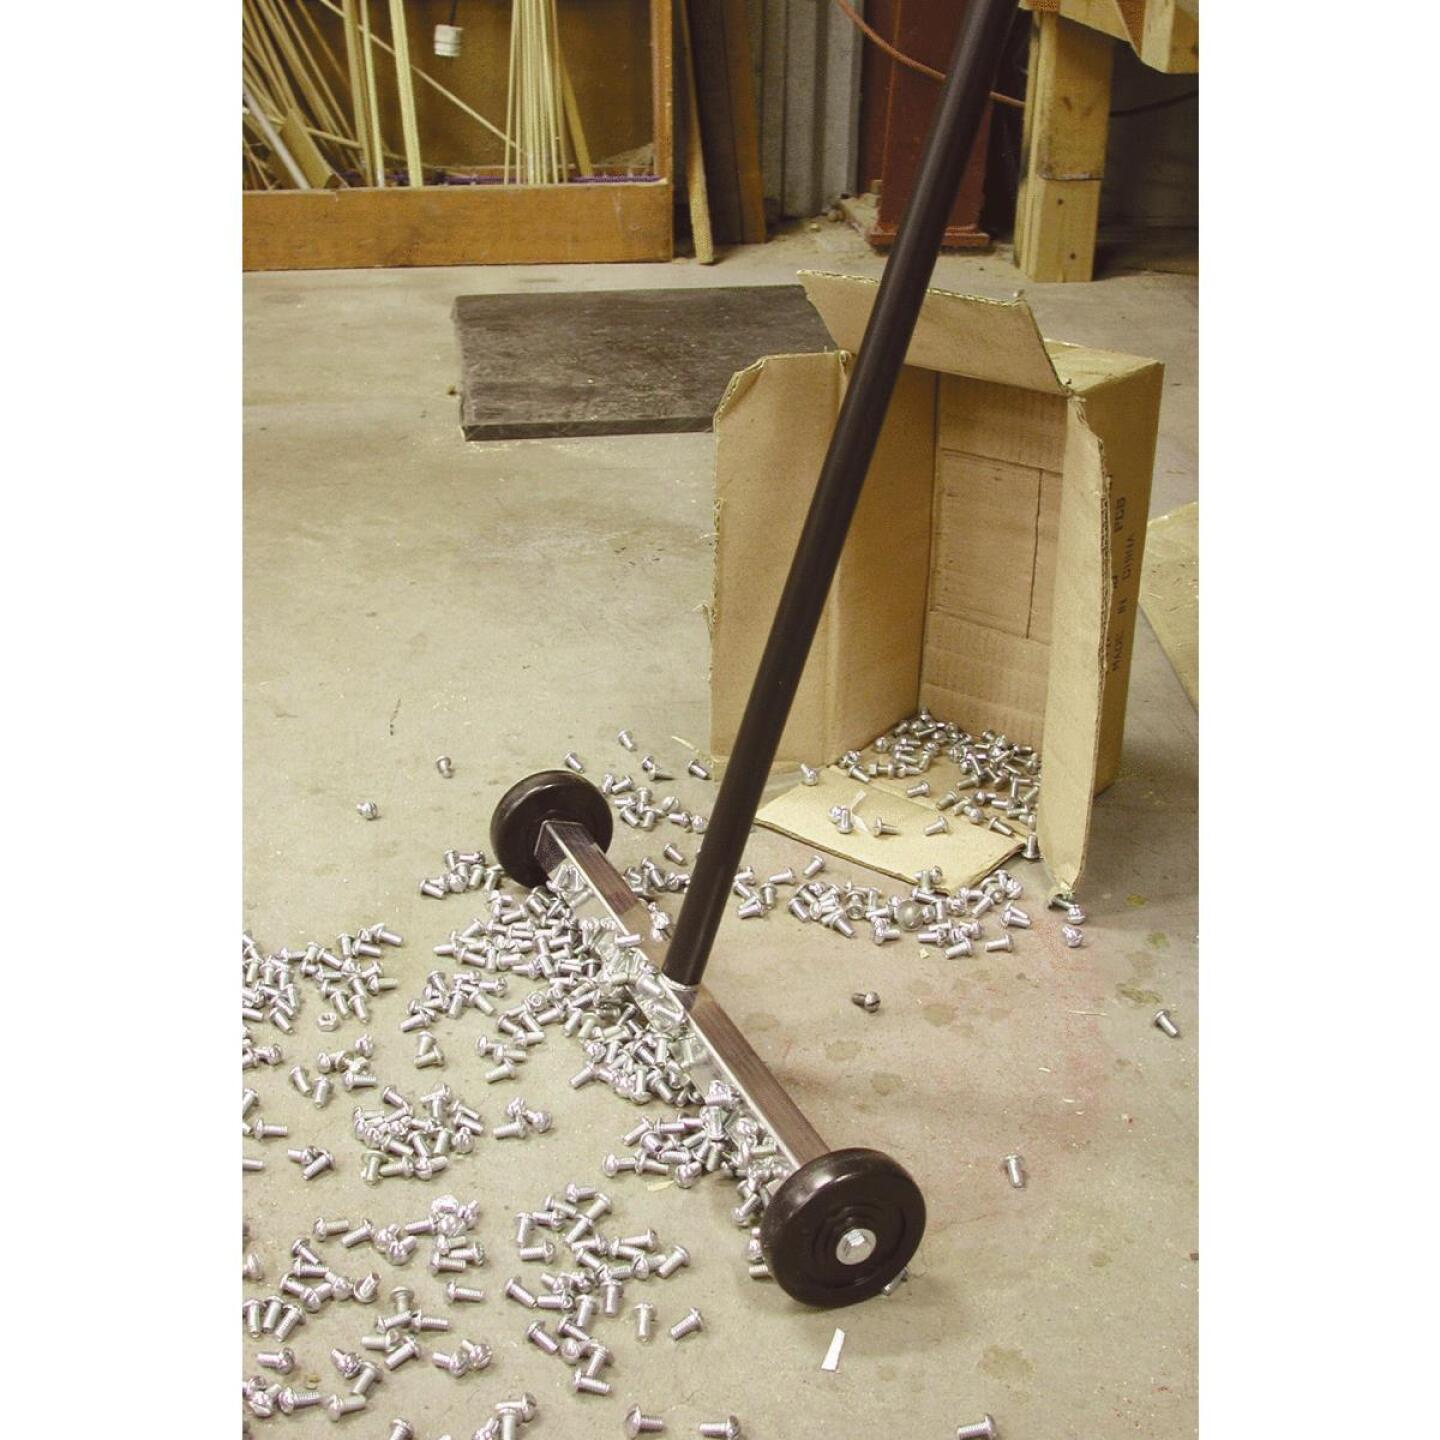 Master Magnetics 32 in. 14.5 in. Magnetic Floor Sweeper Image 2